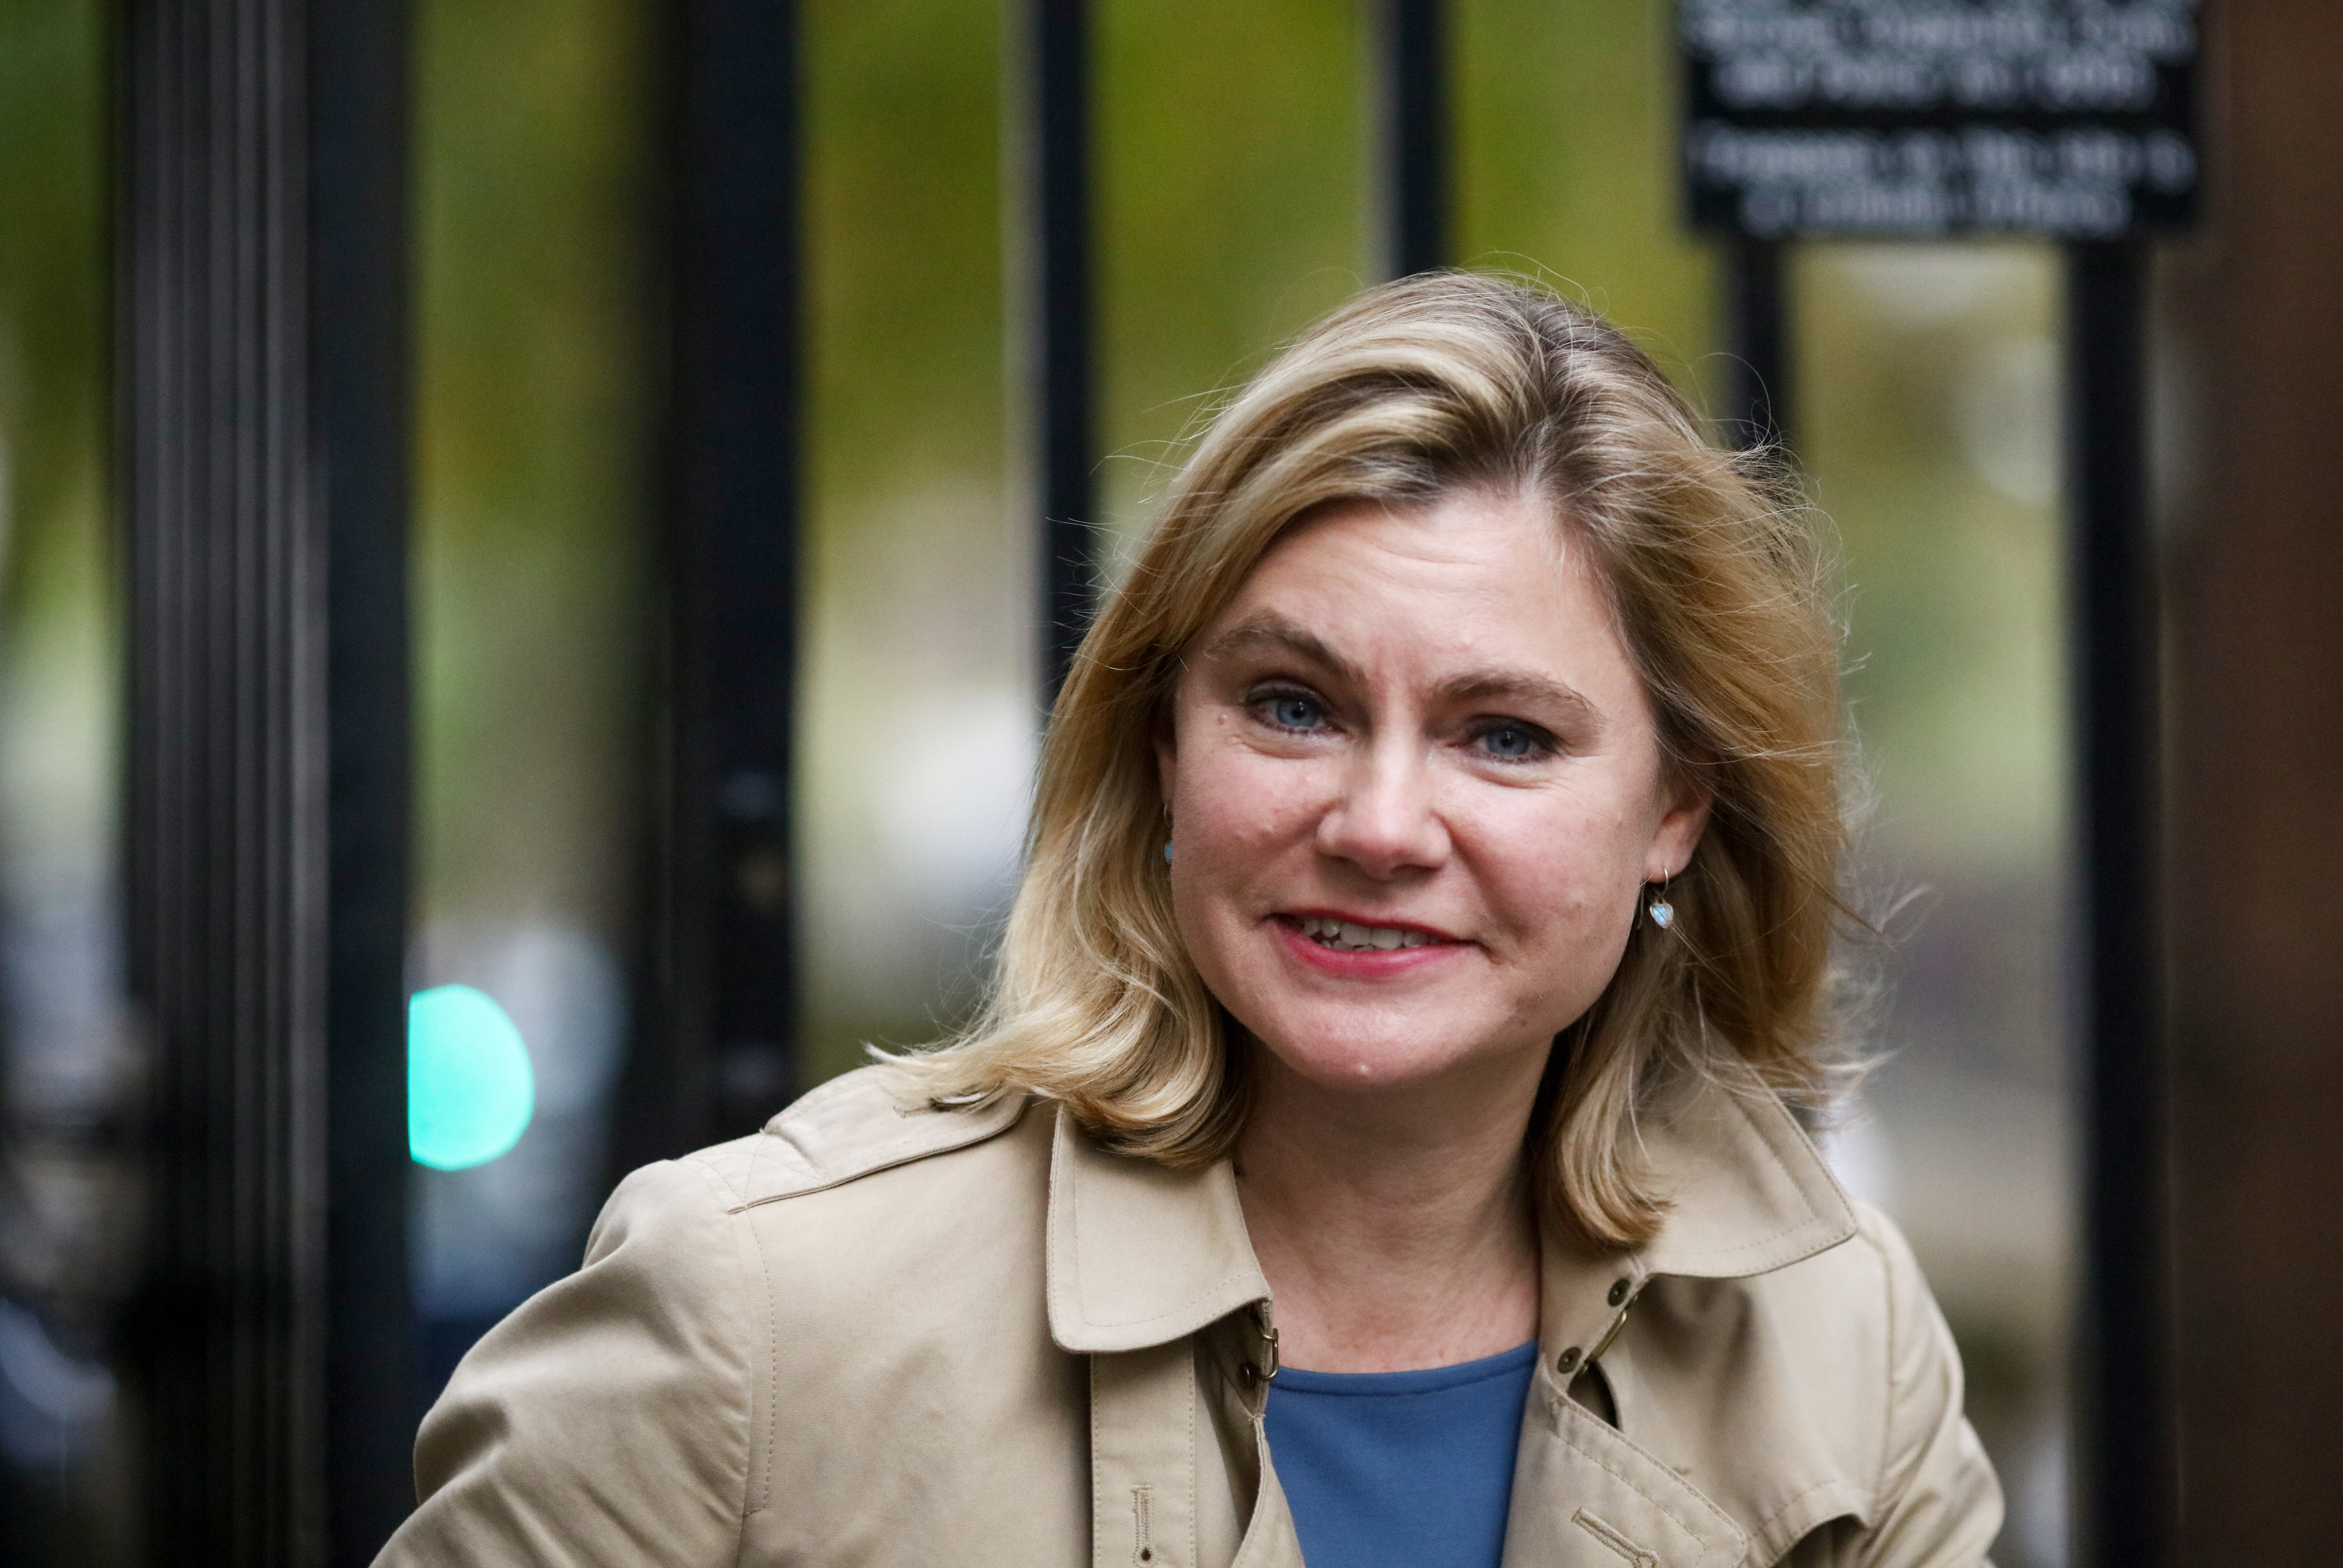 Justine Greening, U.K. education secretary, arrives to attend the weekly cabinet meeting at Downing Street in London, U.K., on Tuesday, Nov. 15, 2016.